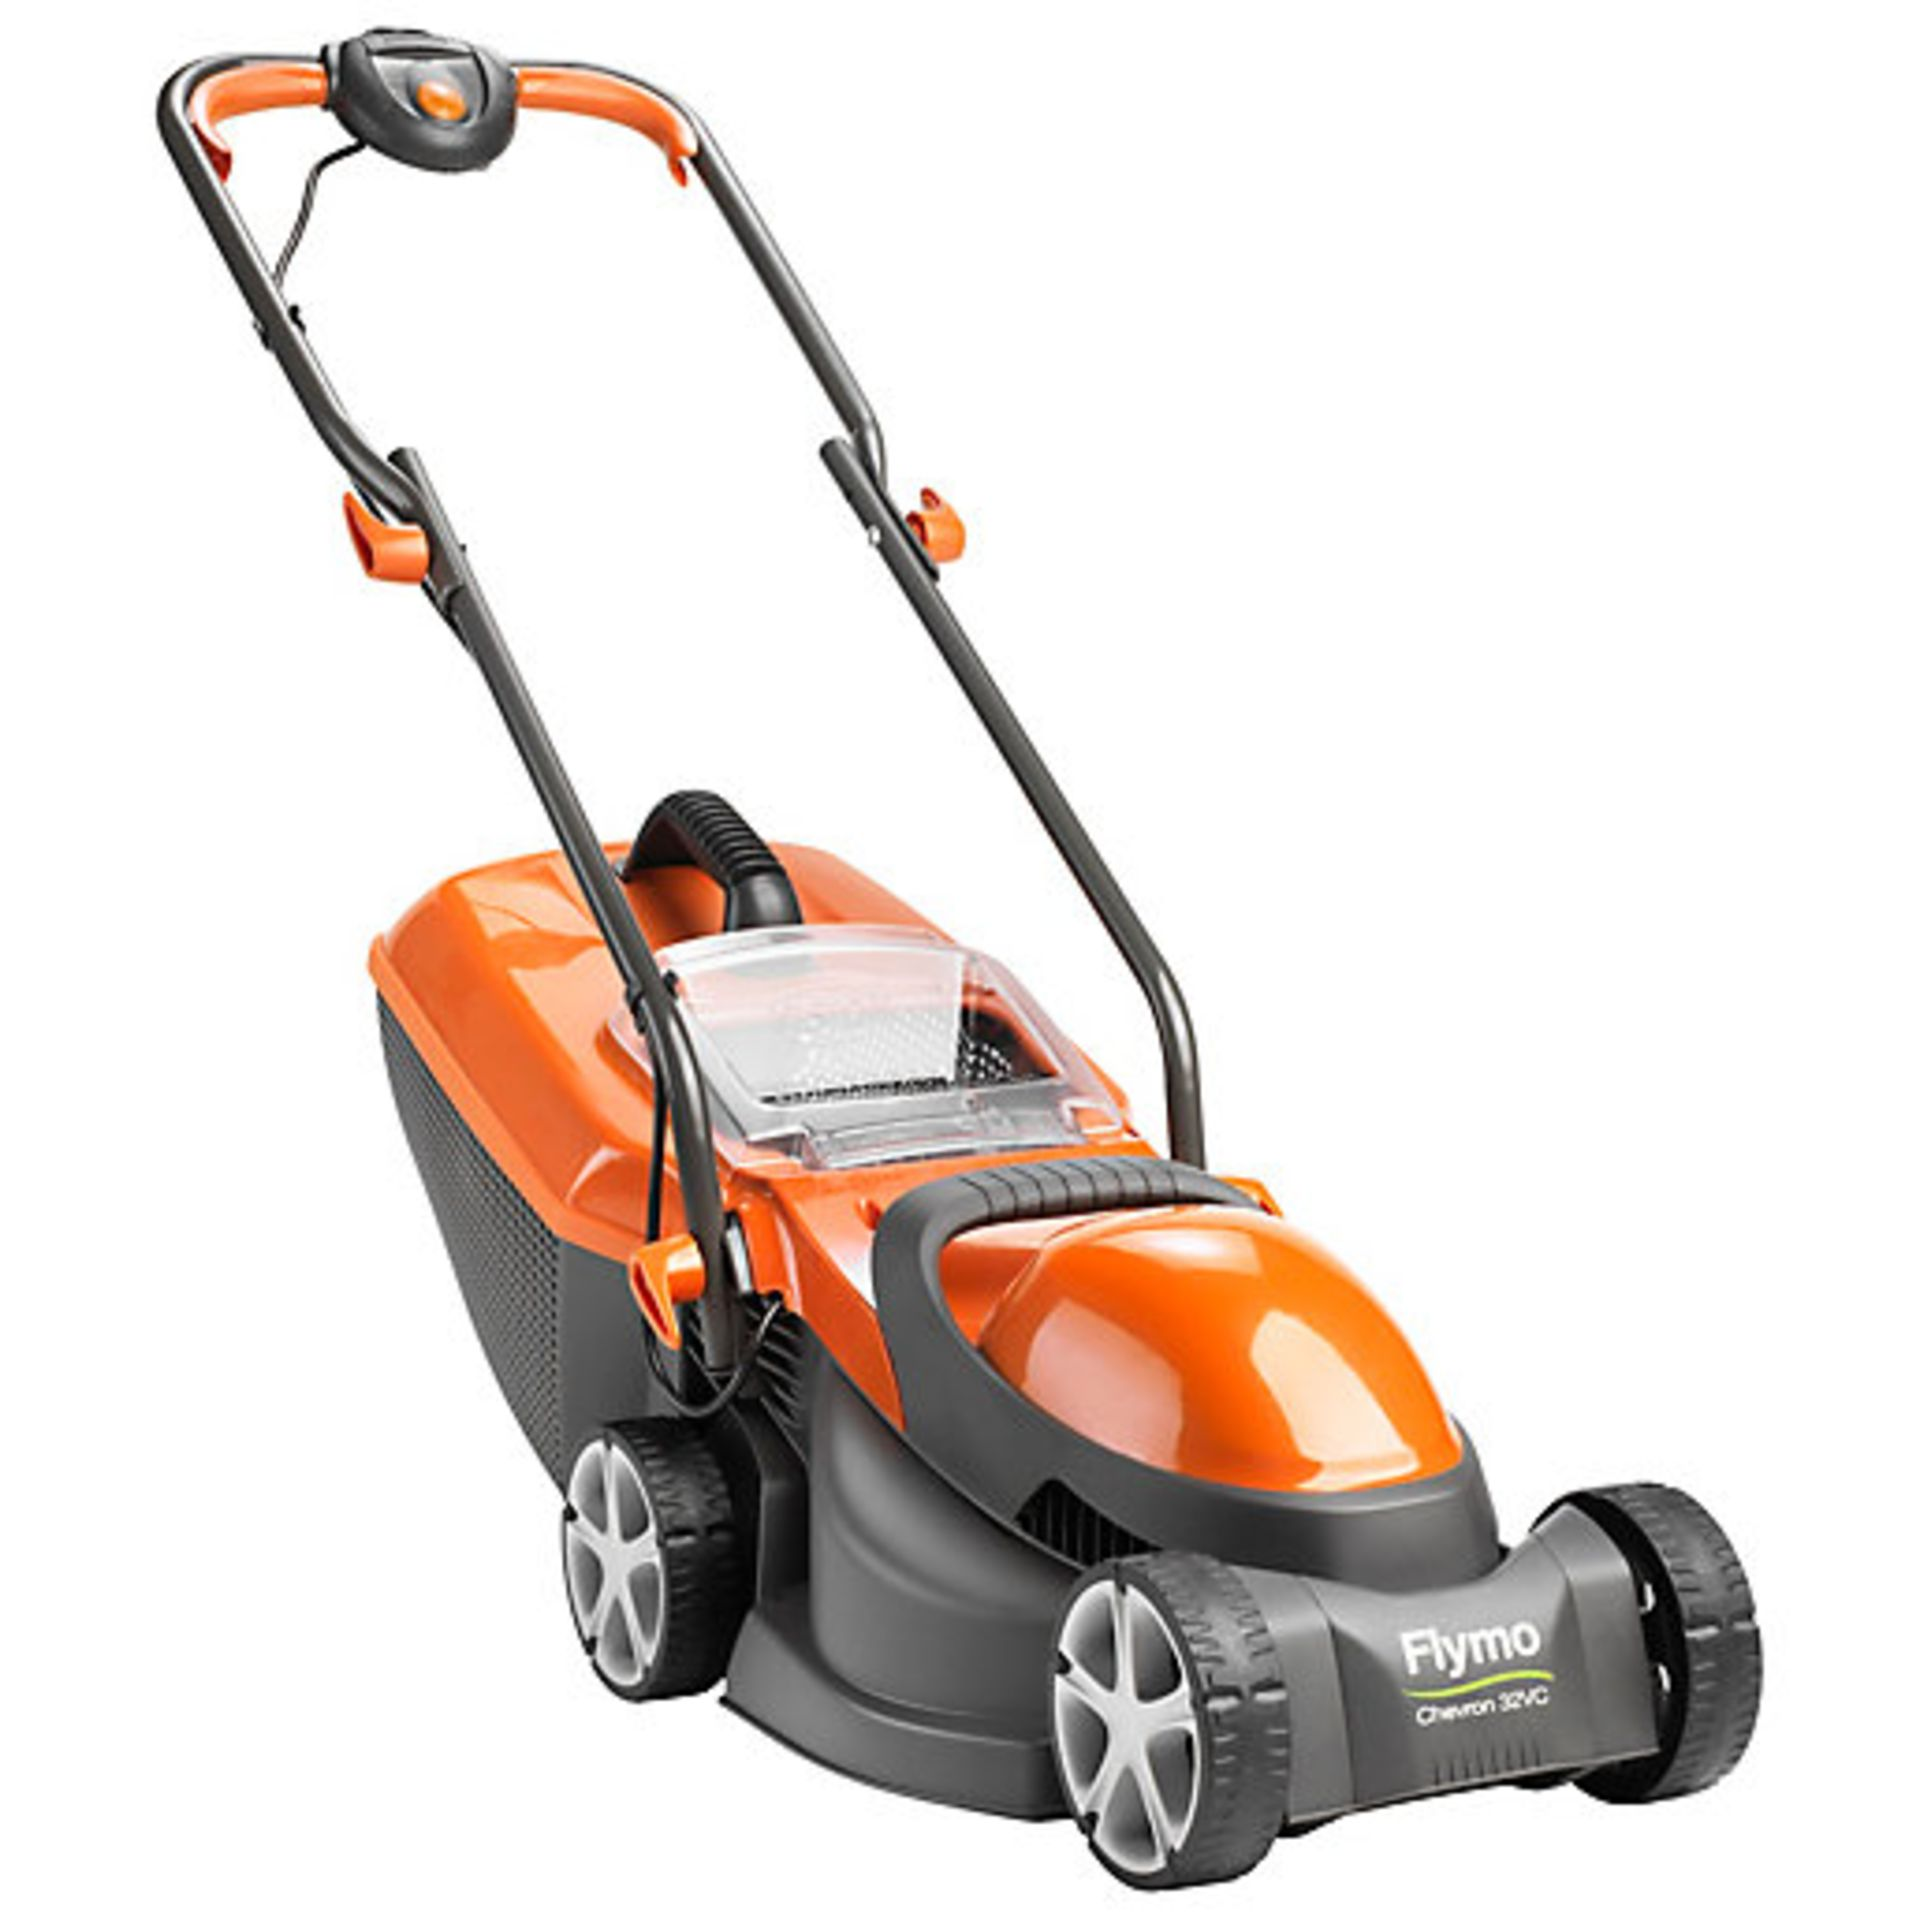 (P7) 1x Flymo Chevron 32V Electric Wheeled Lawnmower RRP £50. New, Sealed Item. - Image 2 of 3